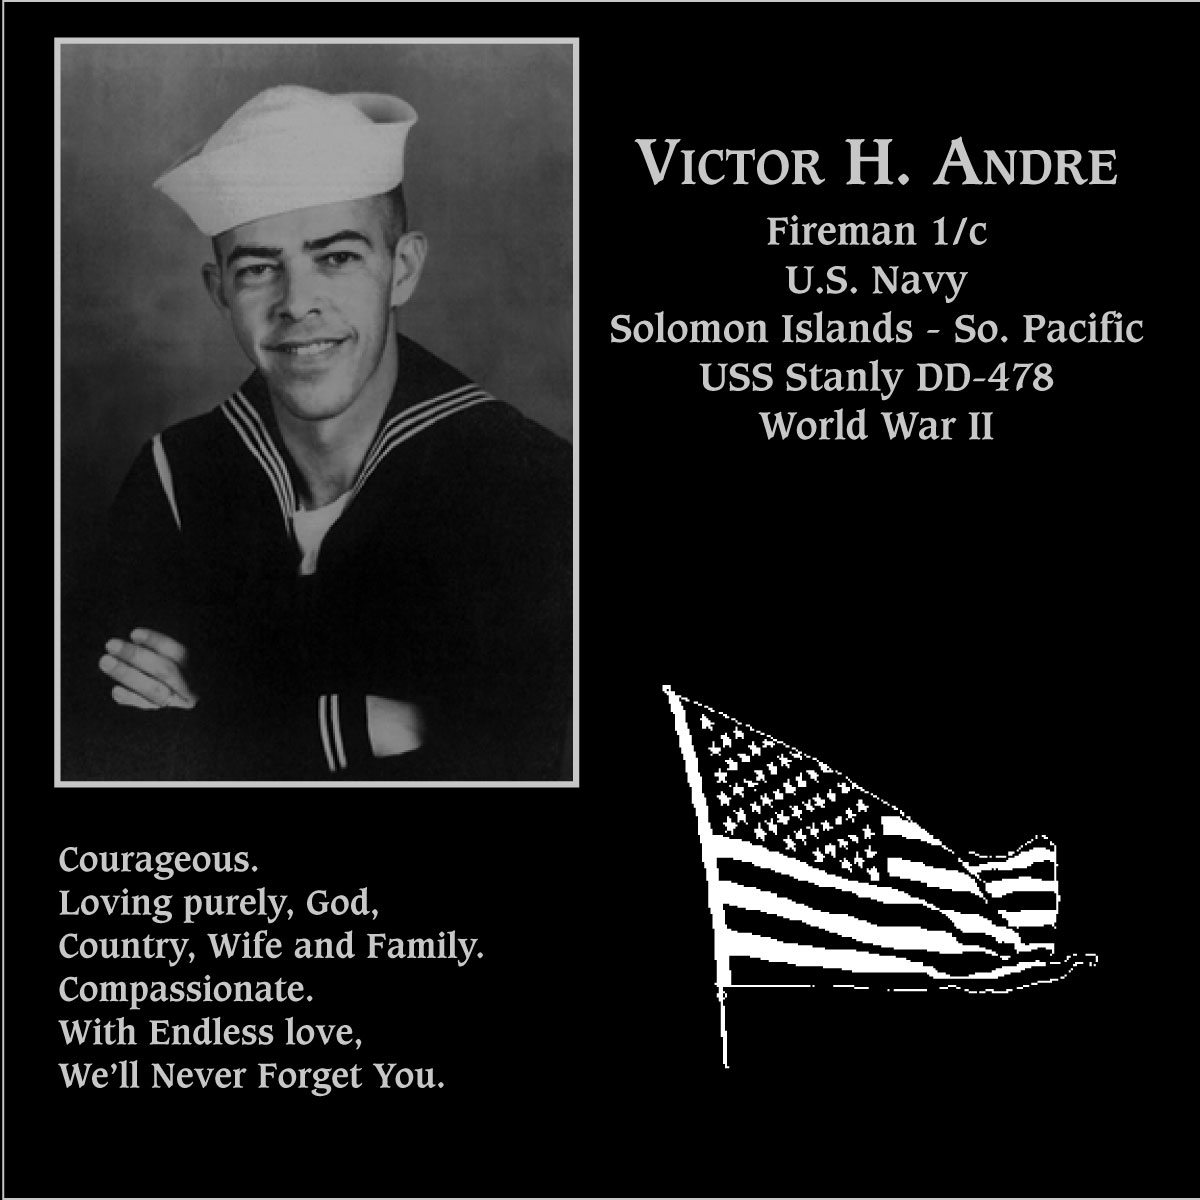 Victor H. Andre